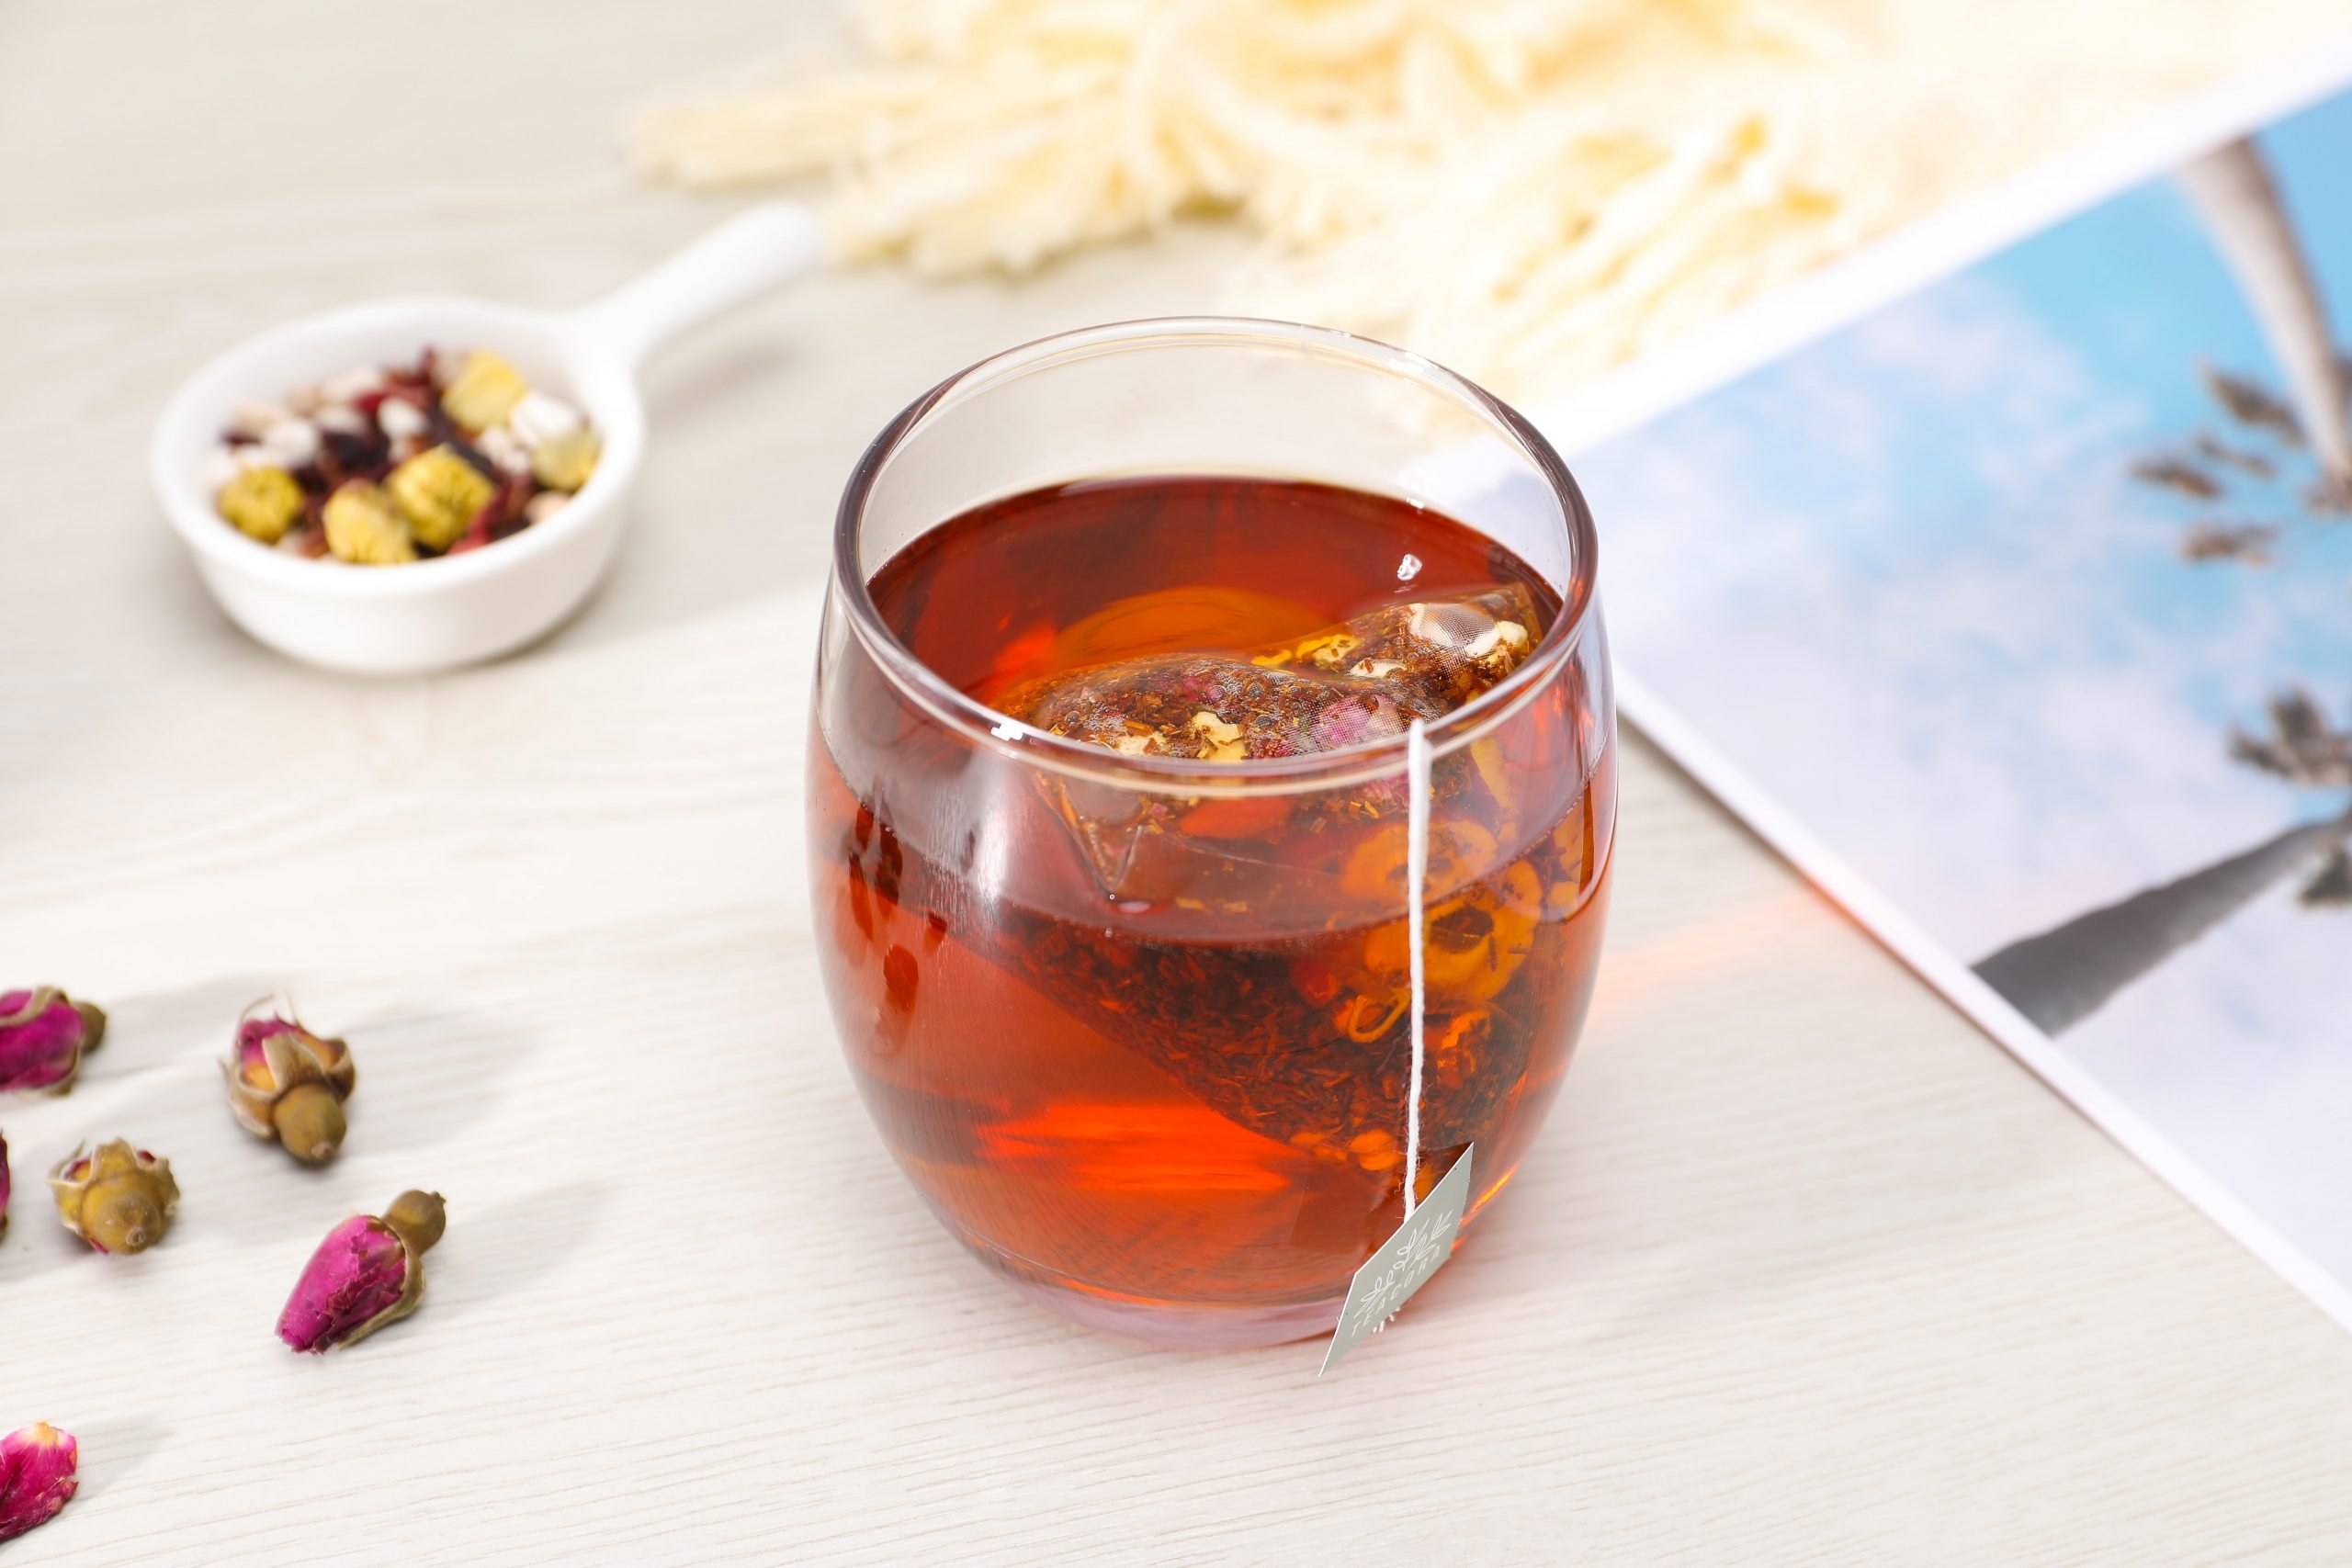 Focused shot of a glass cup filled with Rooibos Tea with a teabag in it.